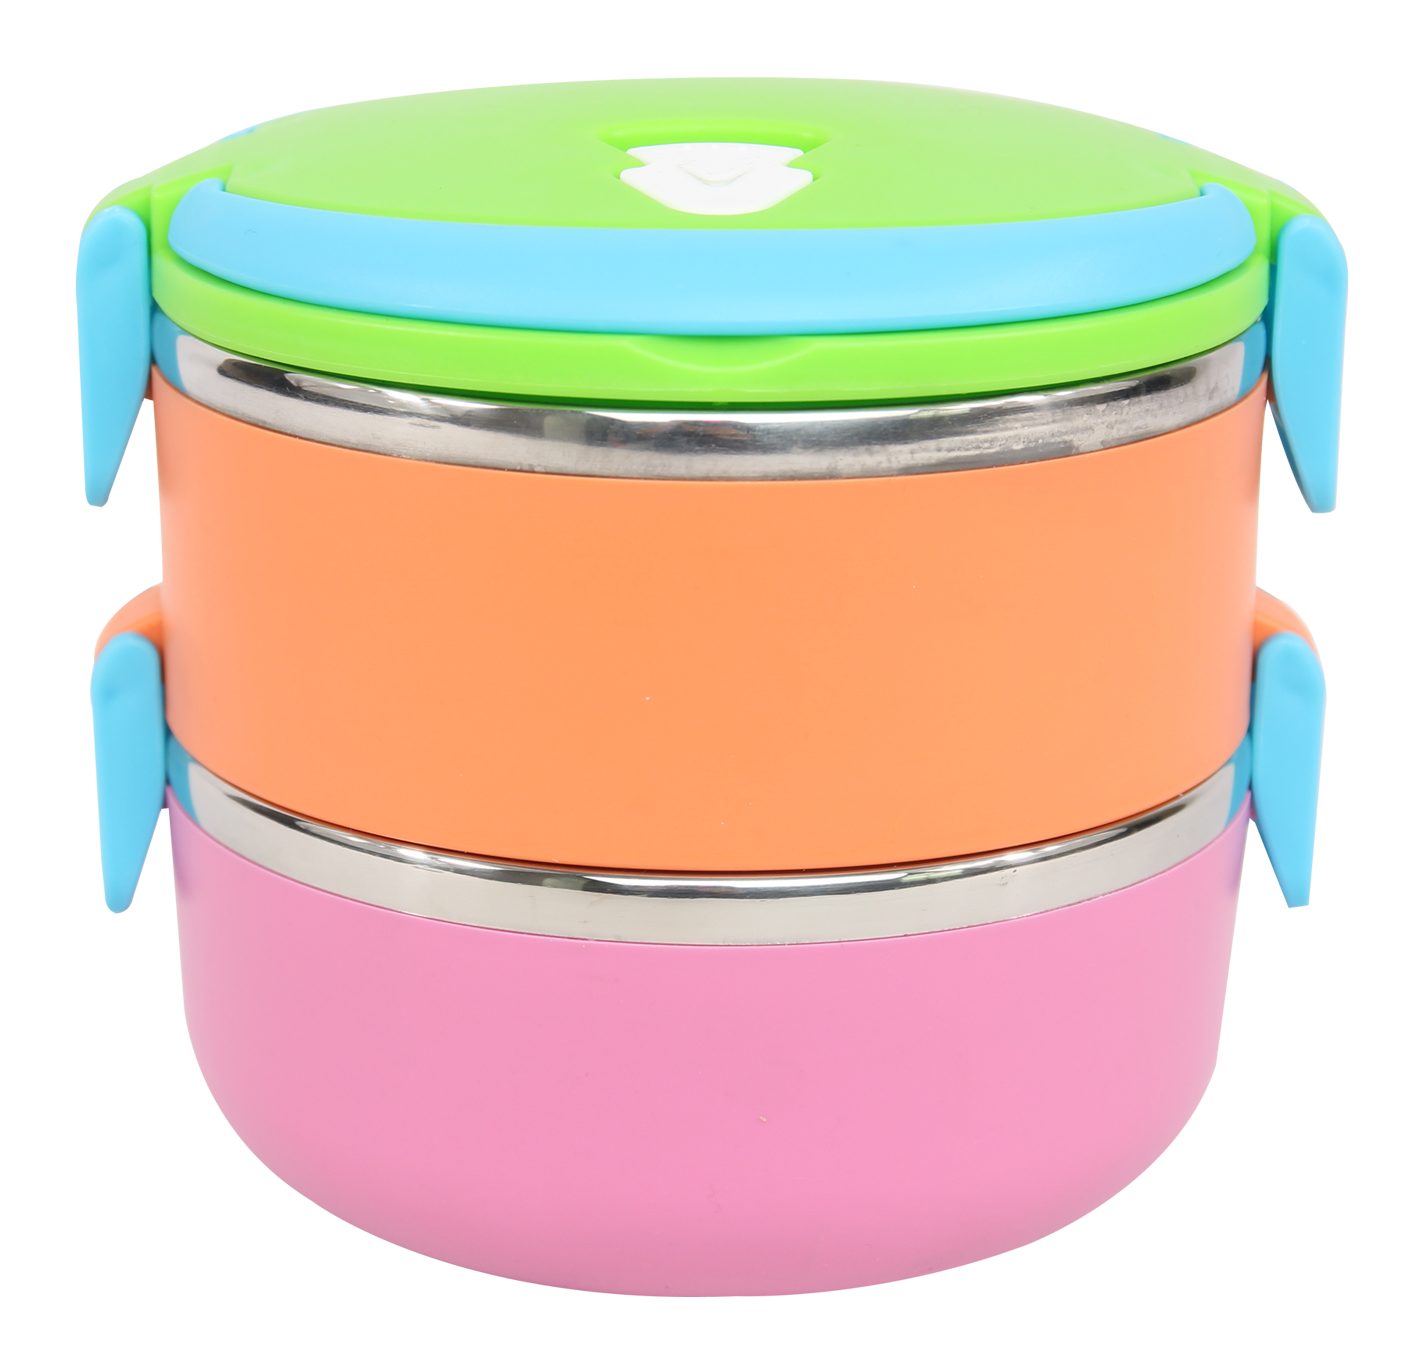 Lunch Box PNG Image